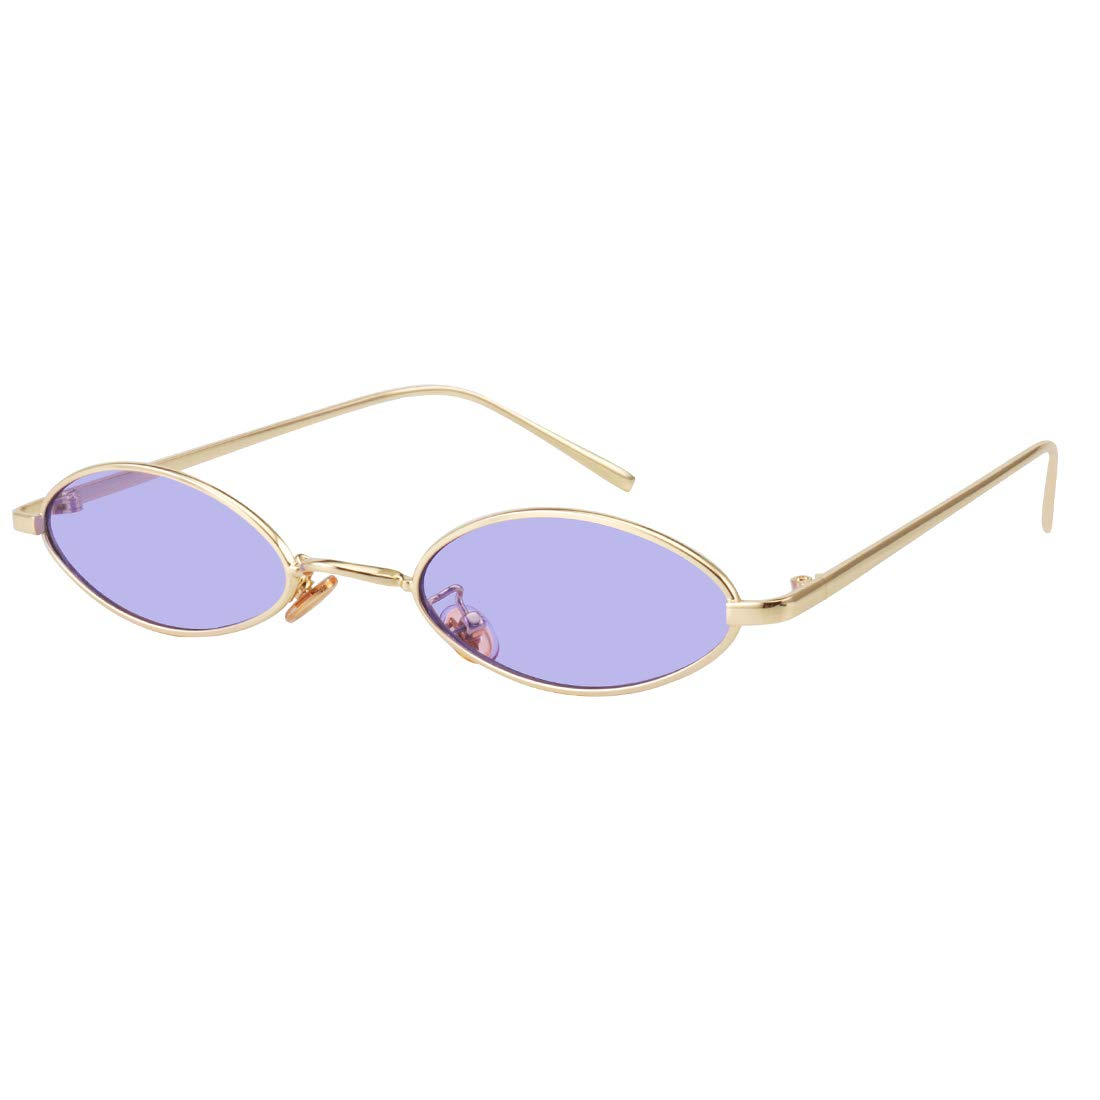 aac2d8b5433d1f Galleon - 90S Retro Vintage Oval Small Sunglasses Tiny Slender Metal Frame  Glasses For Women Men Style Shades (Gold-Purple)